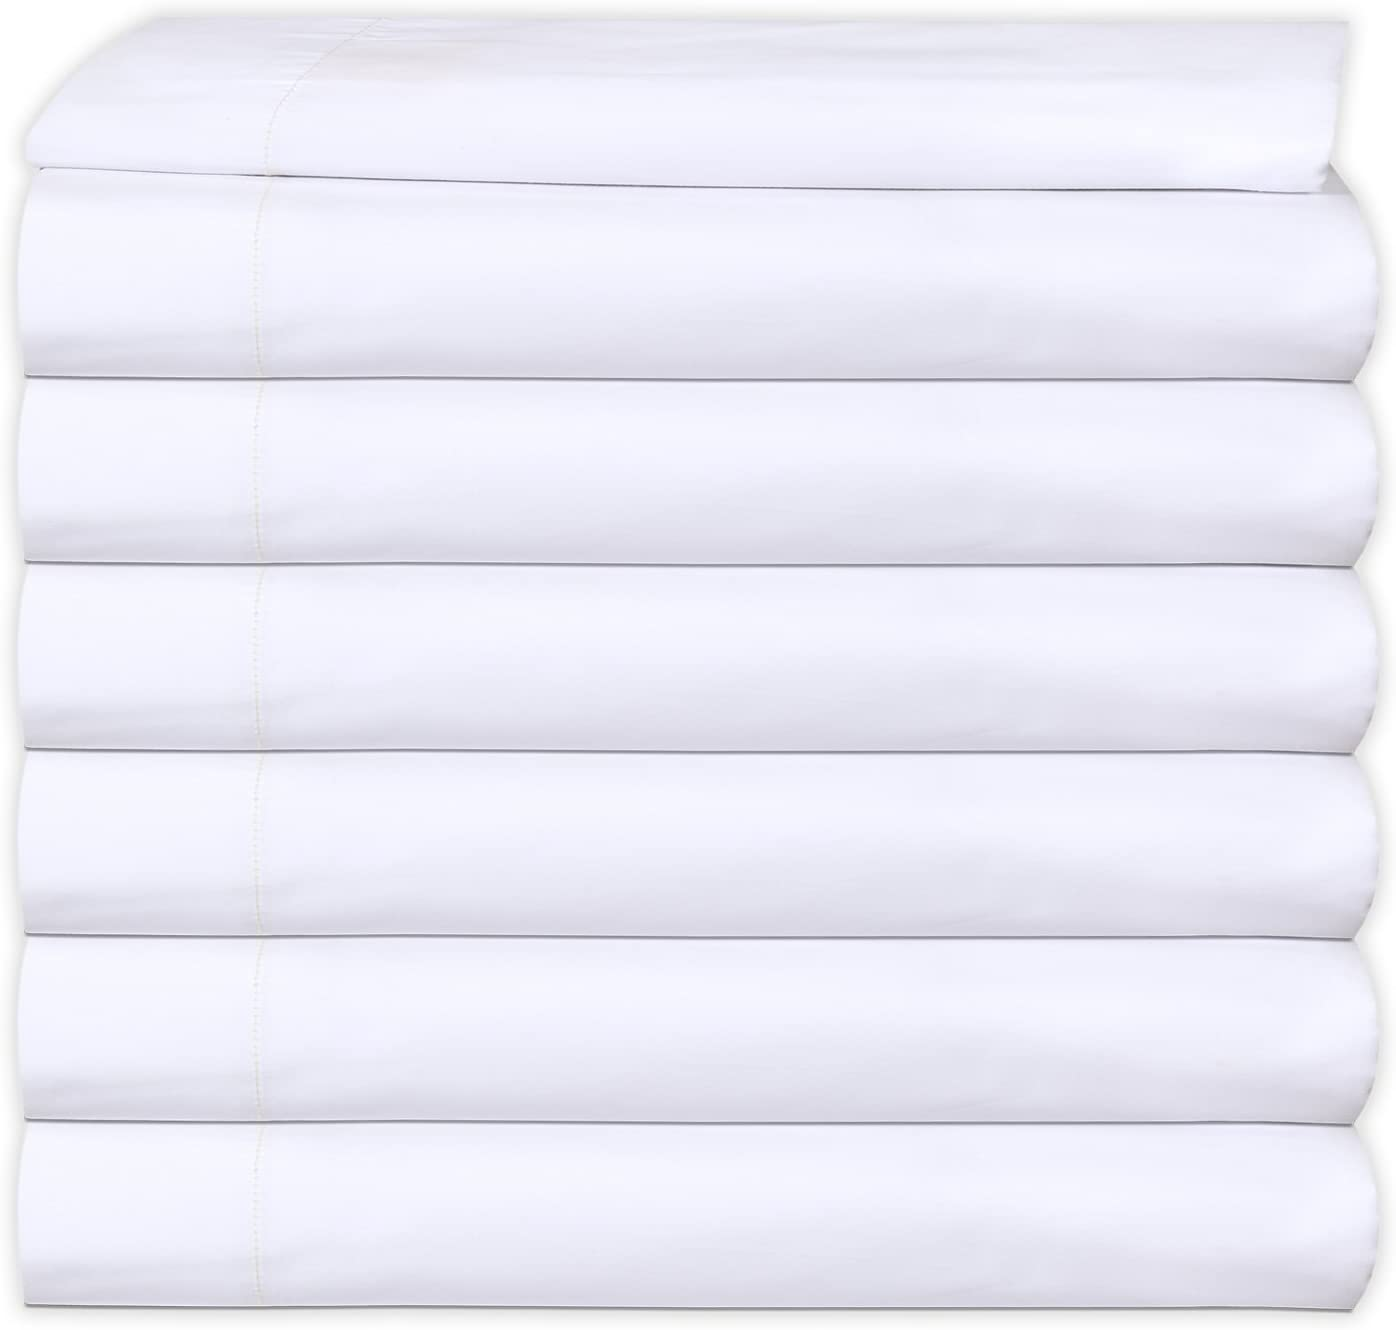 MAGTEX 6 Flat Sheet White T-200 Percale Hotel Linen (Available in Bulk/Dozens) (Twin)